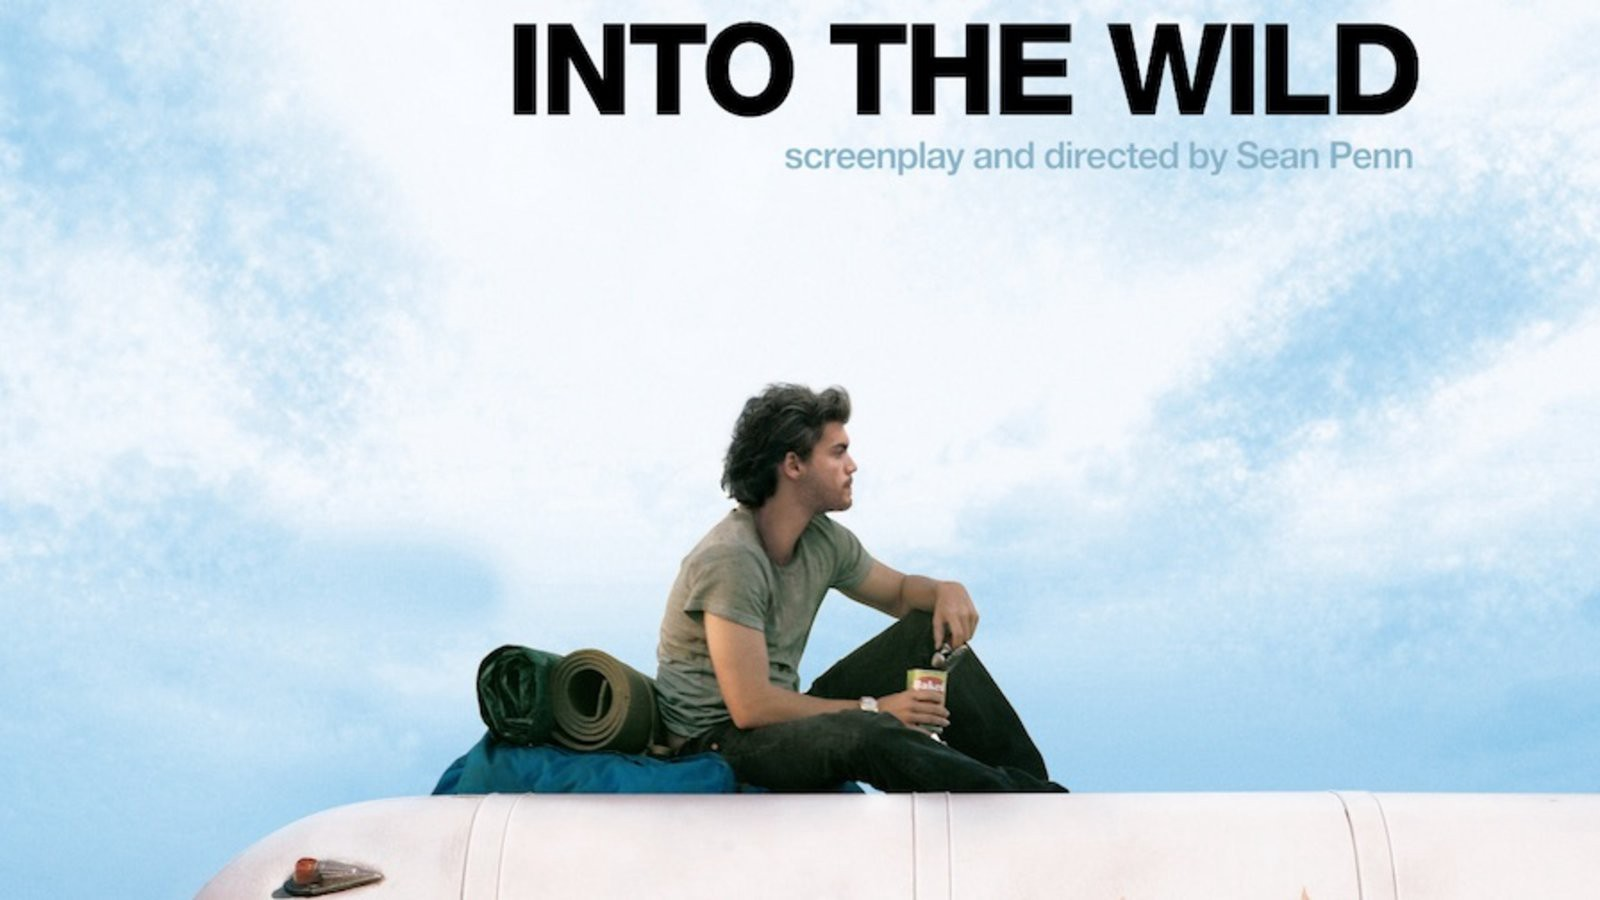 películas into the wild